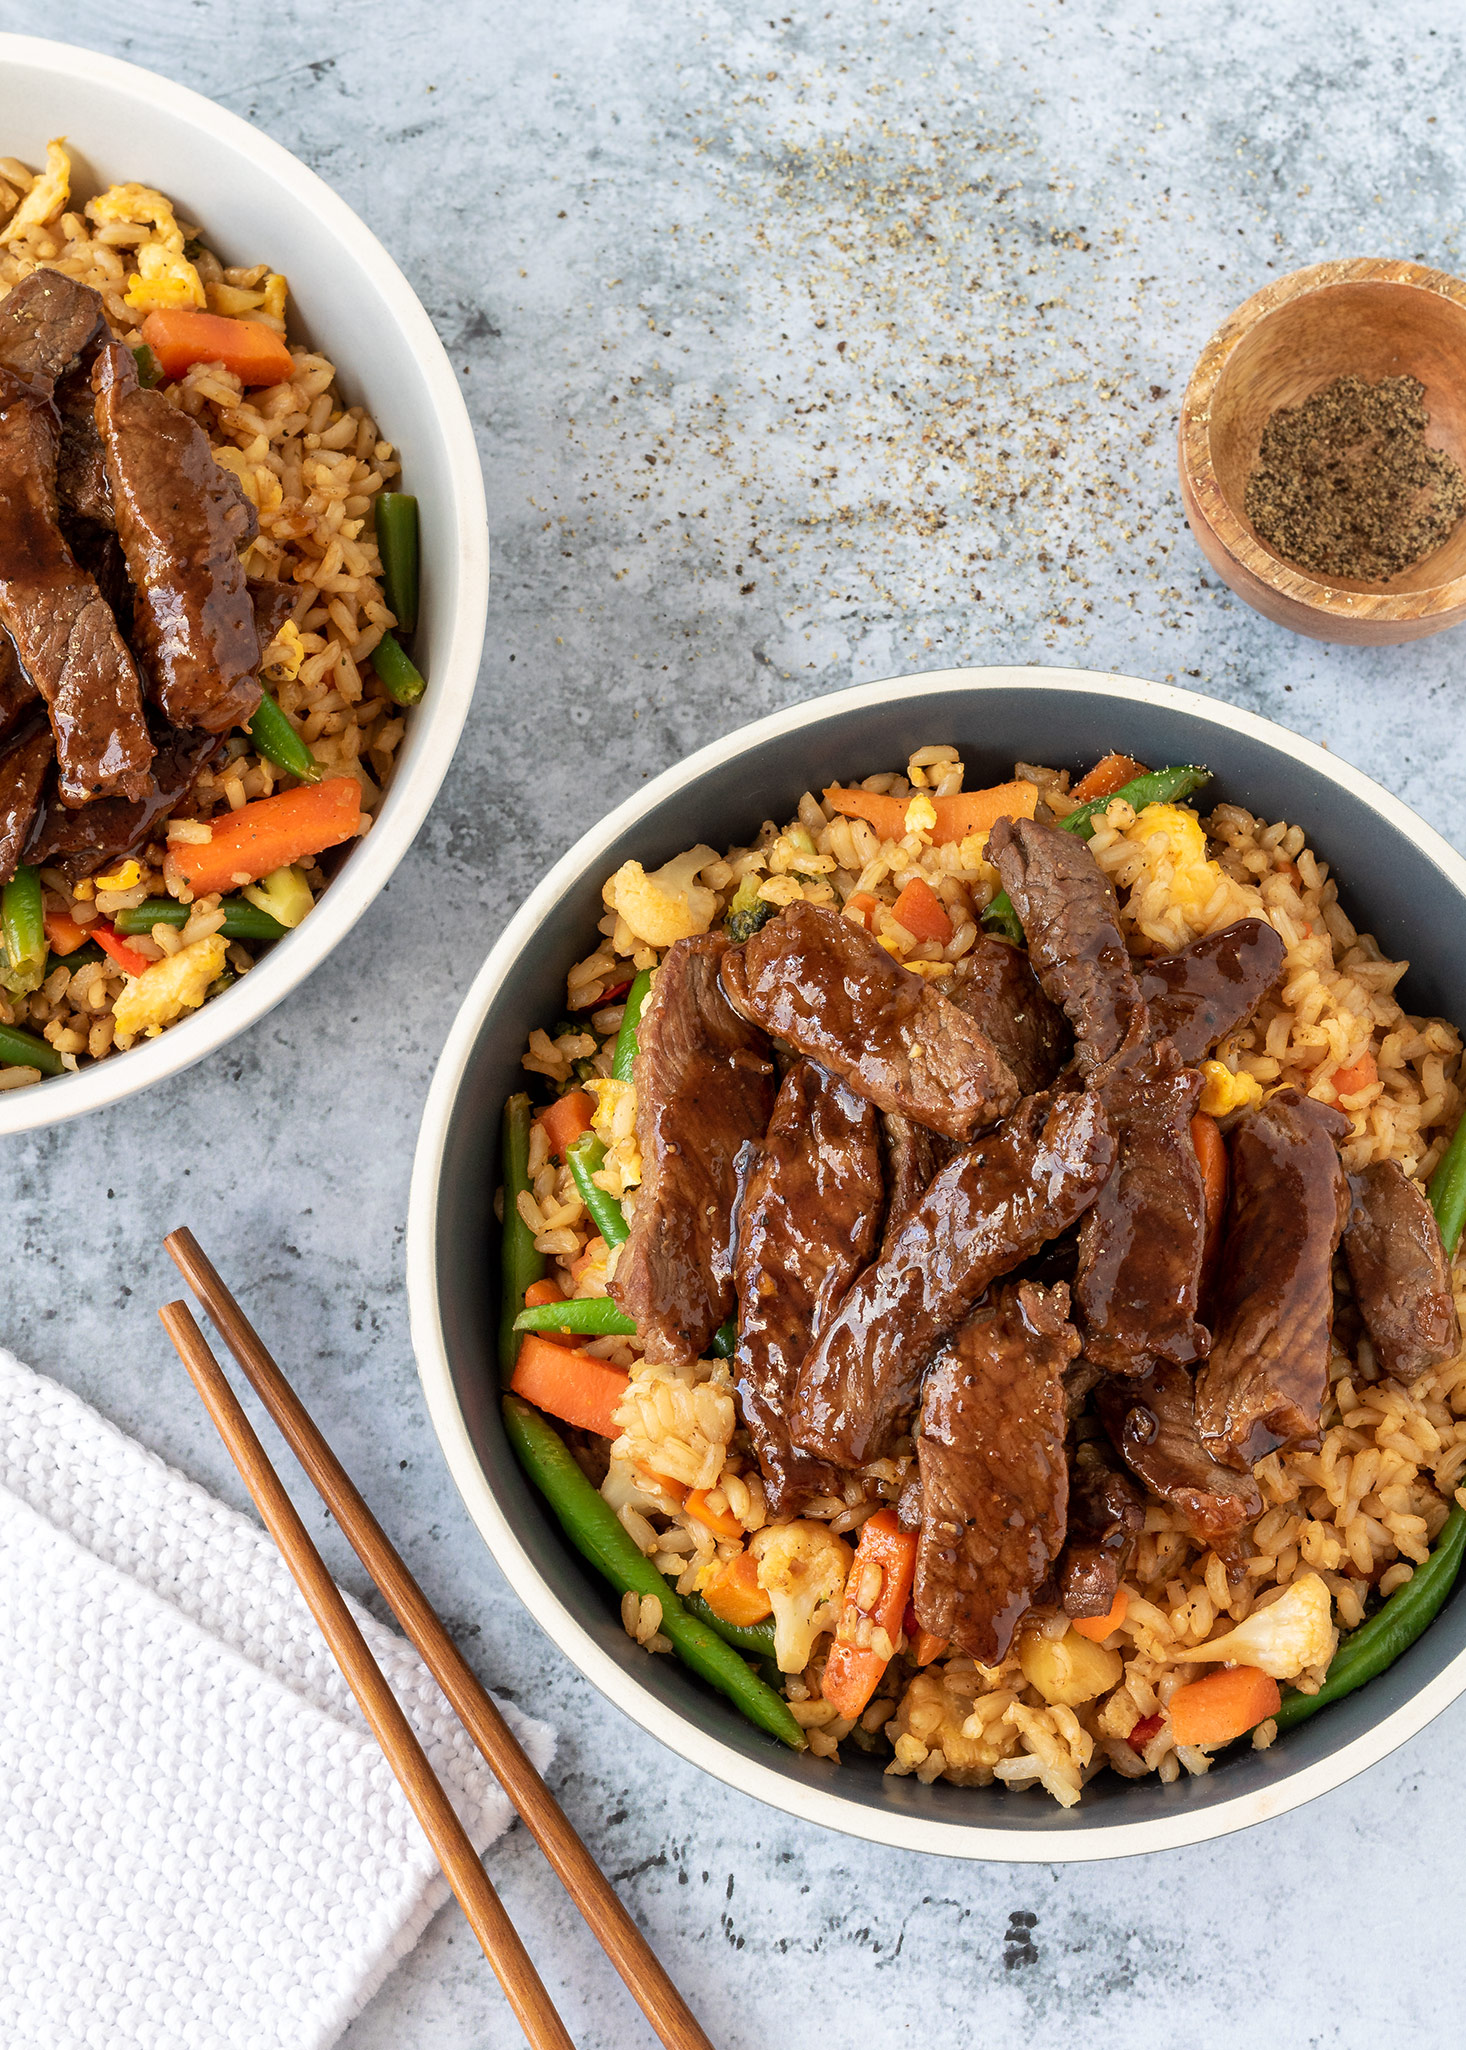 Black pepper beef with fried rice and veggies.